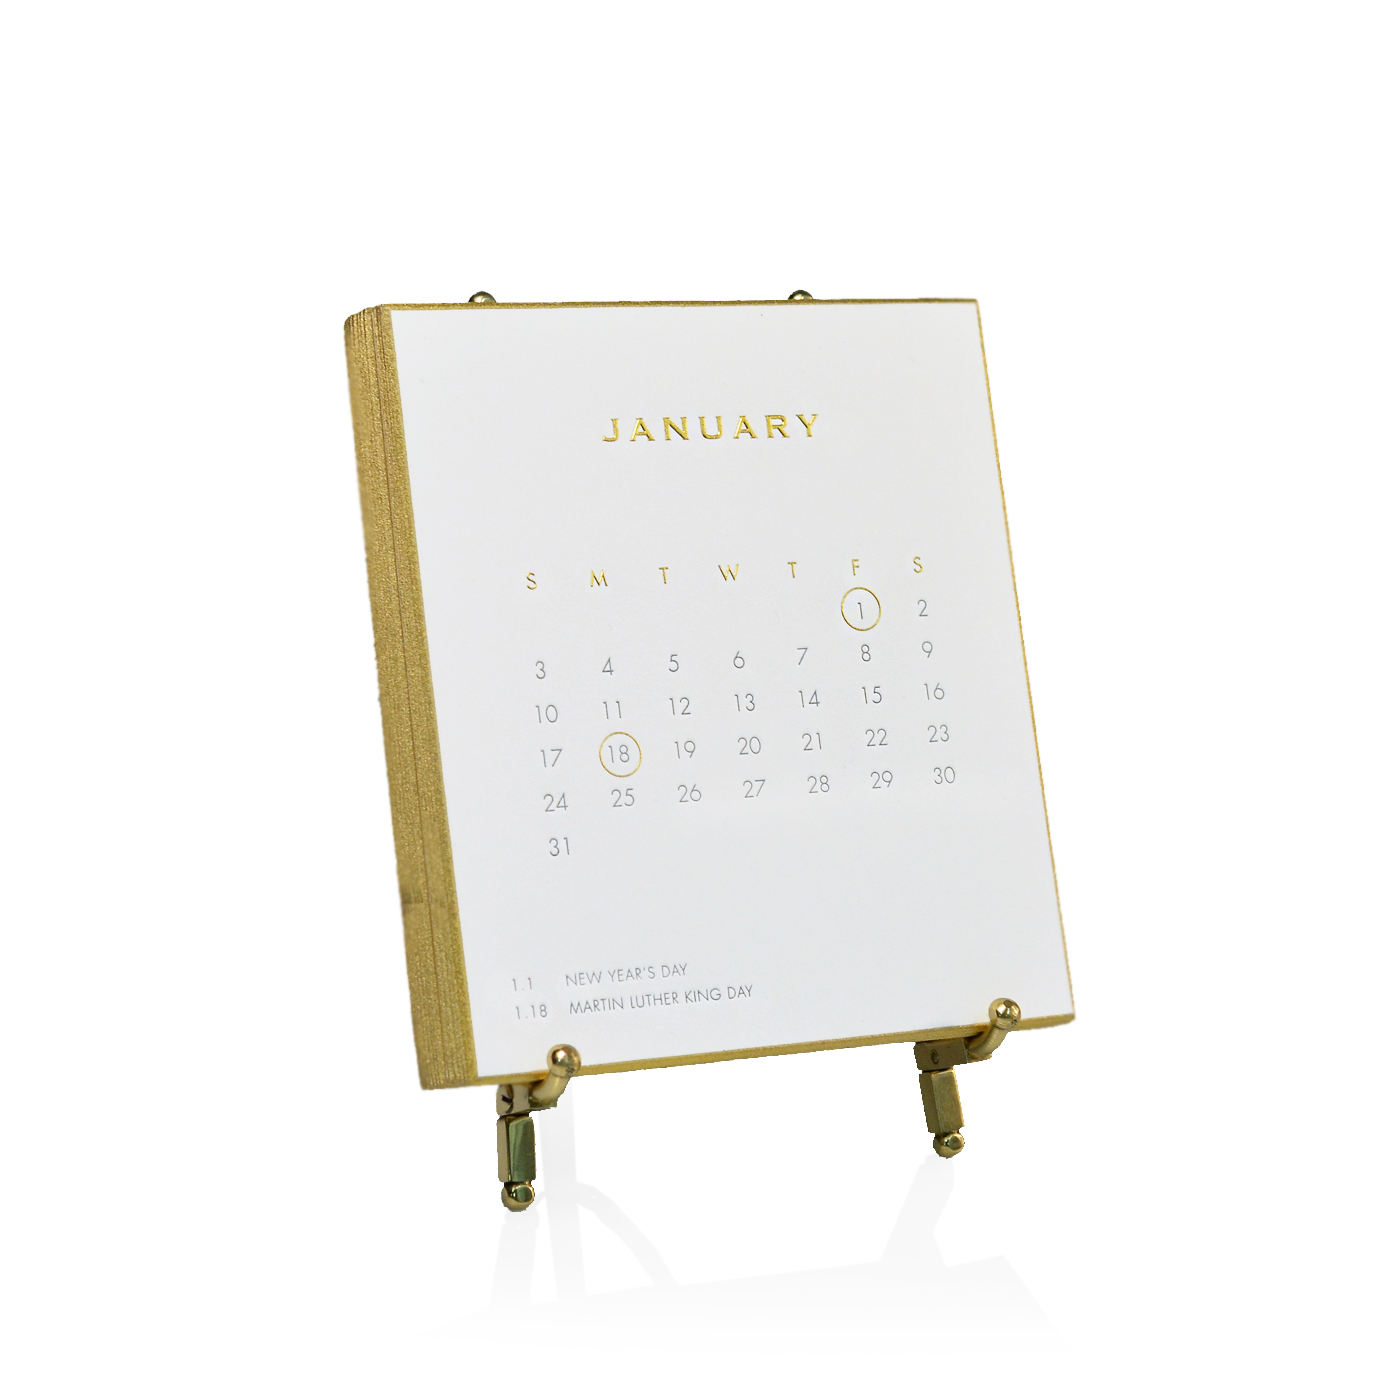 This beautiful calendar is available at Bespoke Designs in Westport. It is made with 2 color letterpress, high quality 2-ply European cotton paper. The beveled edges are hand painted with gold. It comes with a simple gold stand. $145